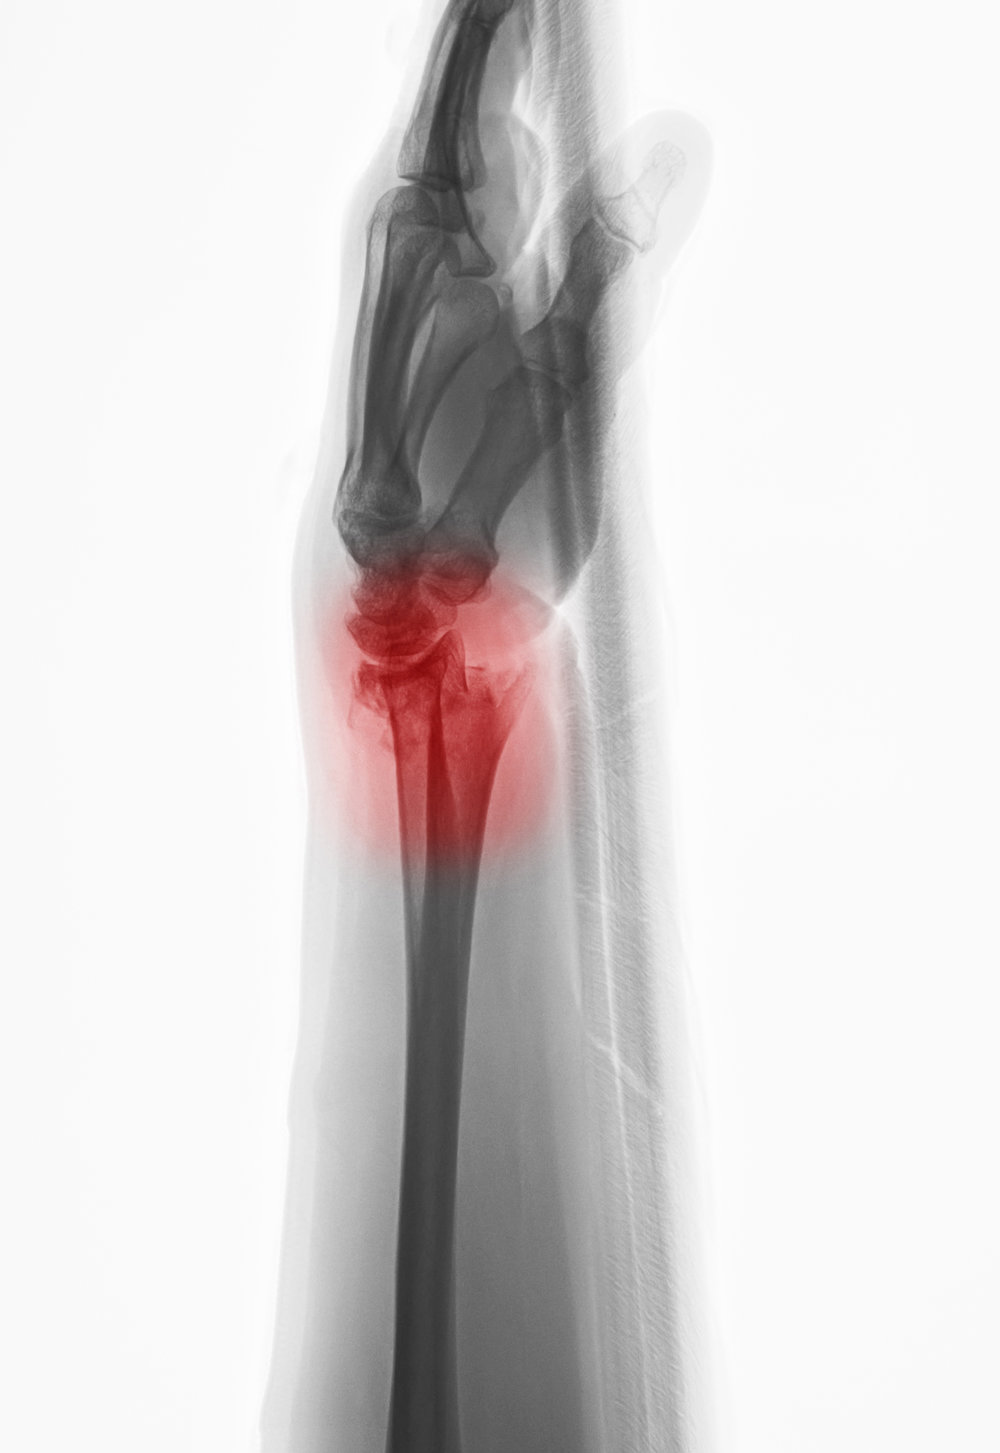 Lateral view of a distal radius fracture